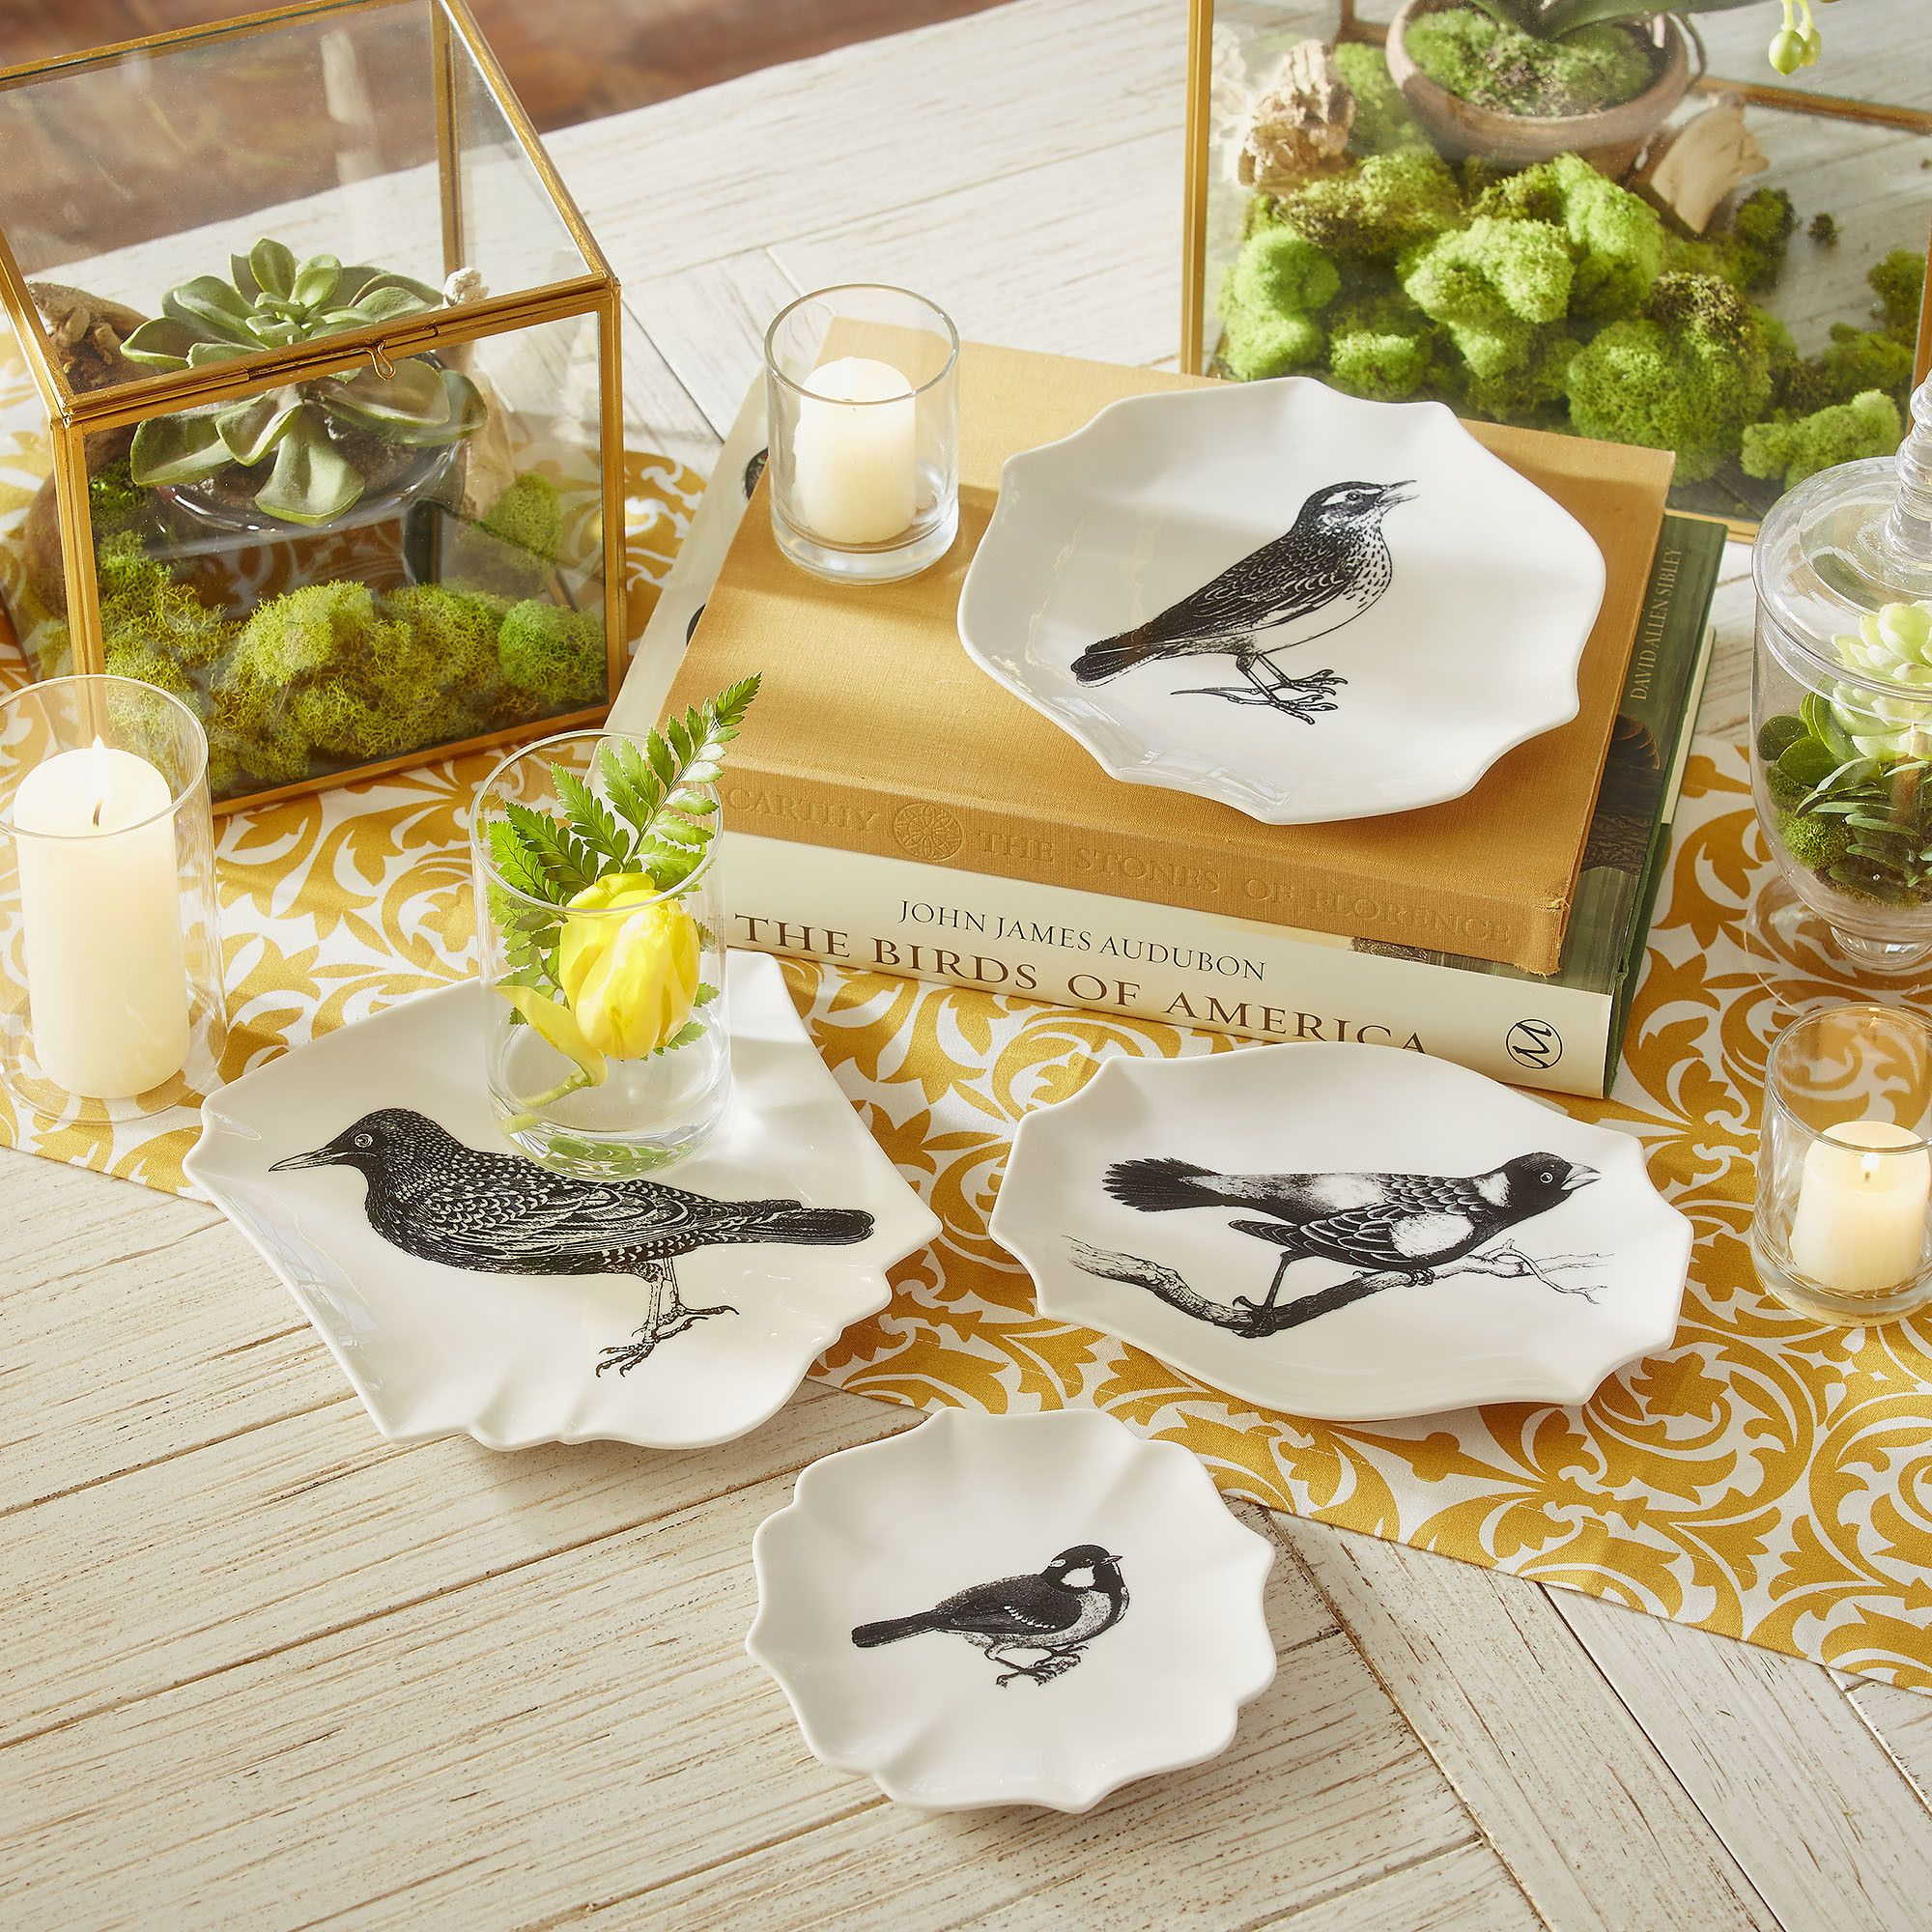 Decorative Bird Plates | Wall Plate Design Ideas